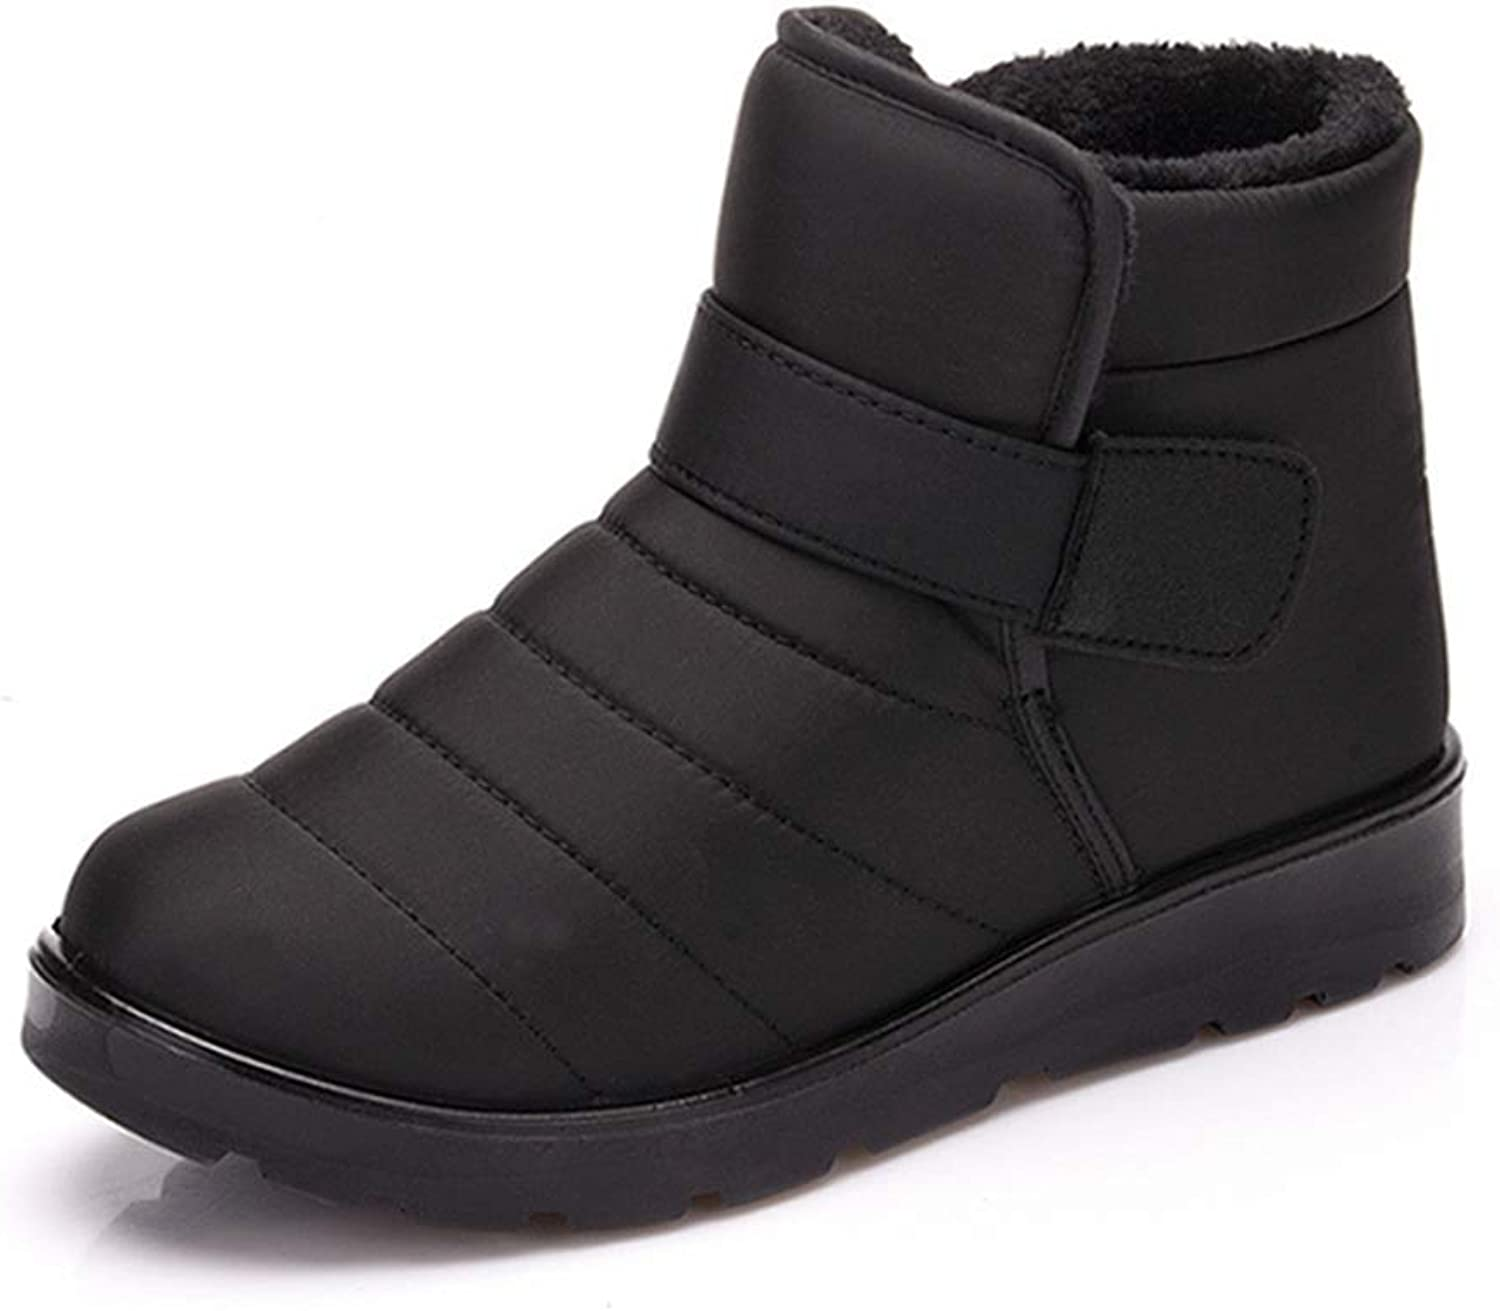 Men and Women Snow Boots Plus Fluffy Winter Outdoor Waterproof Slip On Cotton shoes Ankle Boots